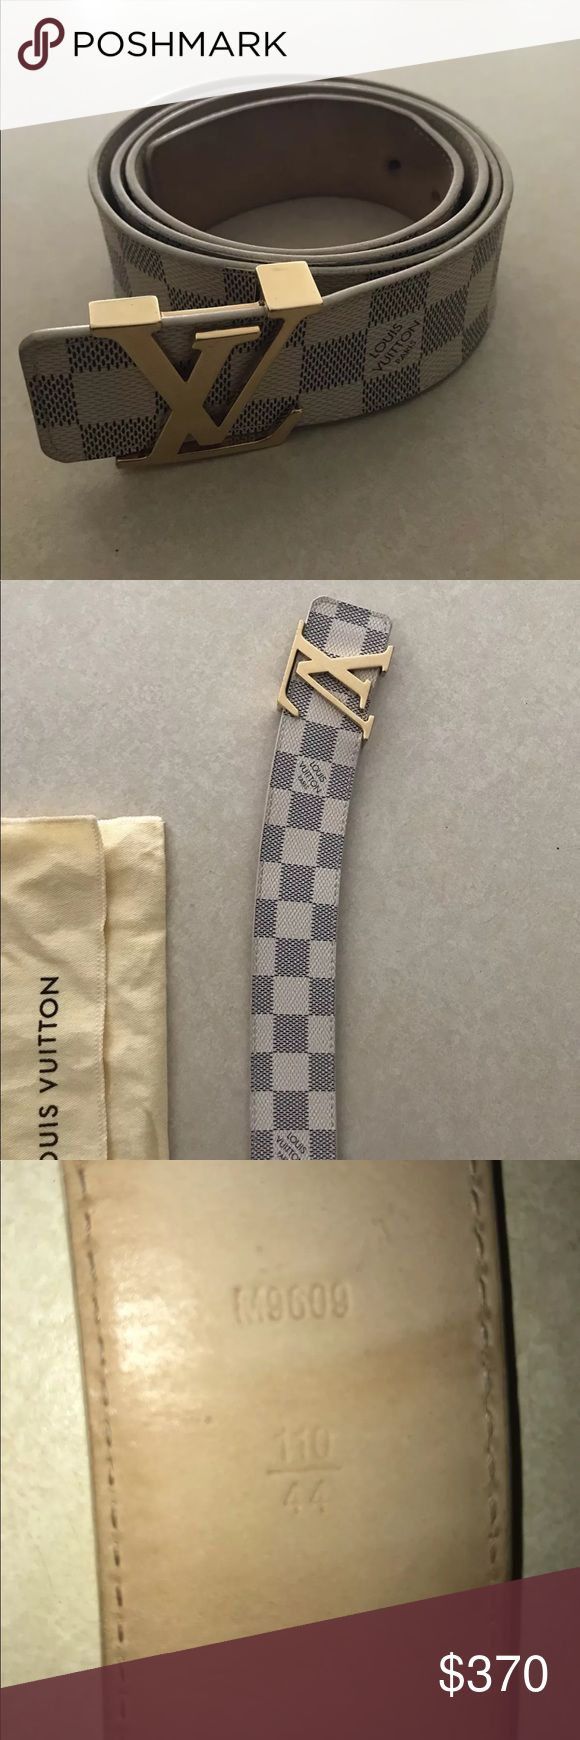 Authentic Louis Vuitton LV Initials Belt 100% Authentic 🔶 We are a very negotiable service 🔶 We provide overnight shipping and express shipping 🔶 Our transactions are made through third party applications 🔶 If you are interested in buying this product please contact us @ 201-496-0366 🔶 Louis Vuitton Accessories Belts